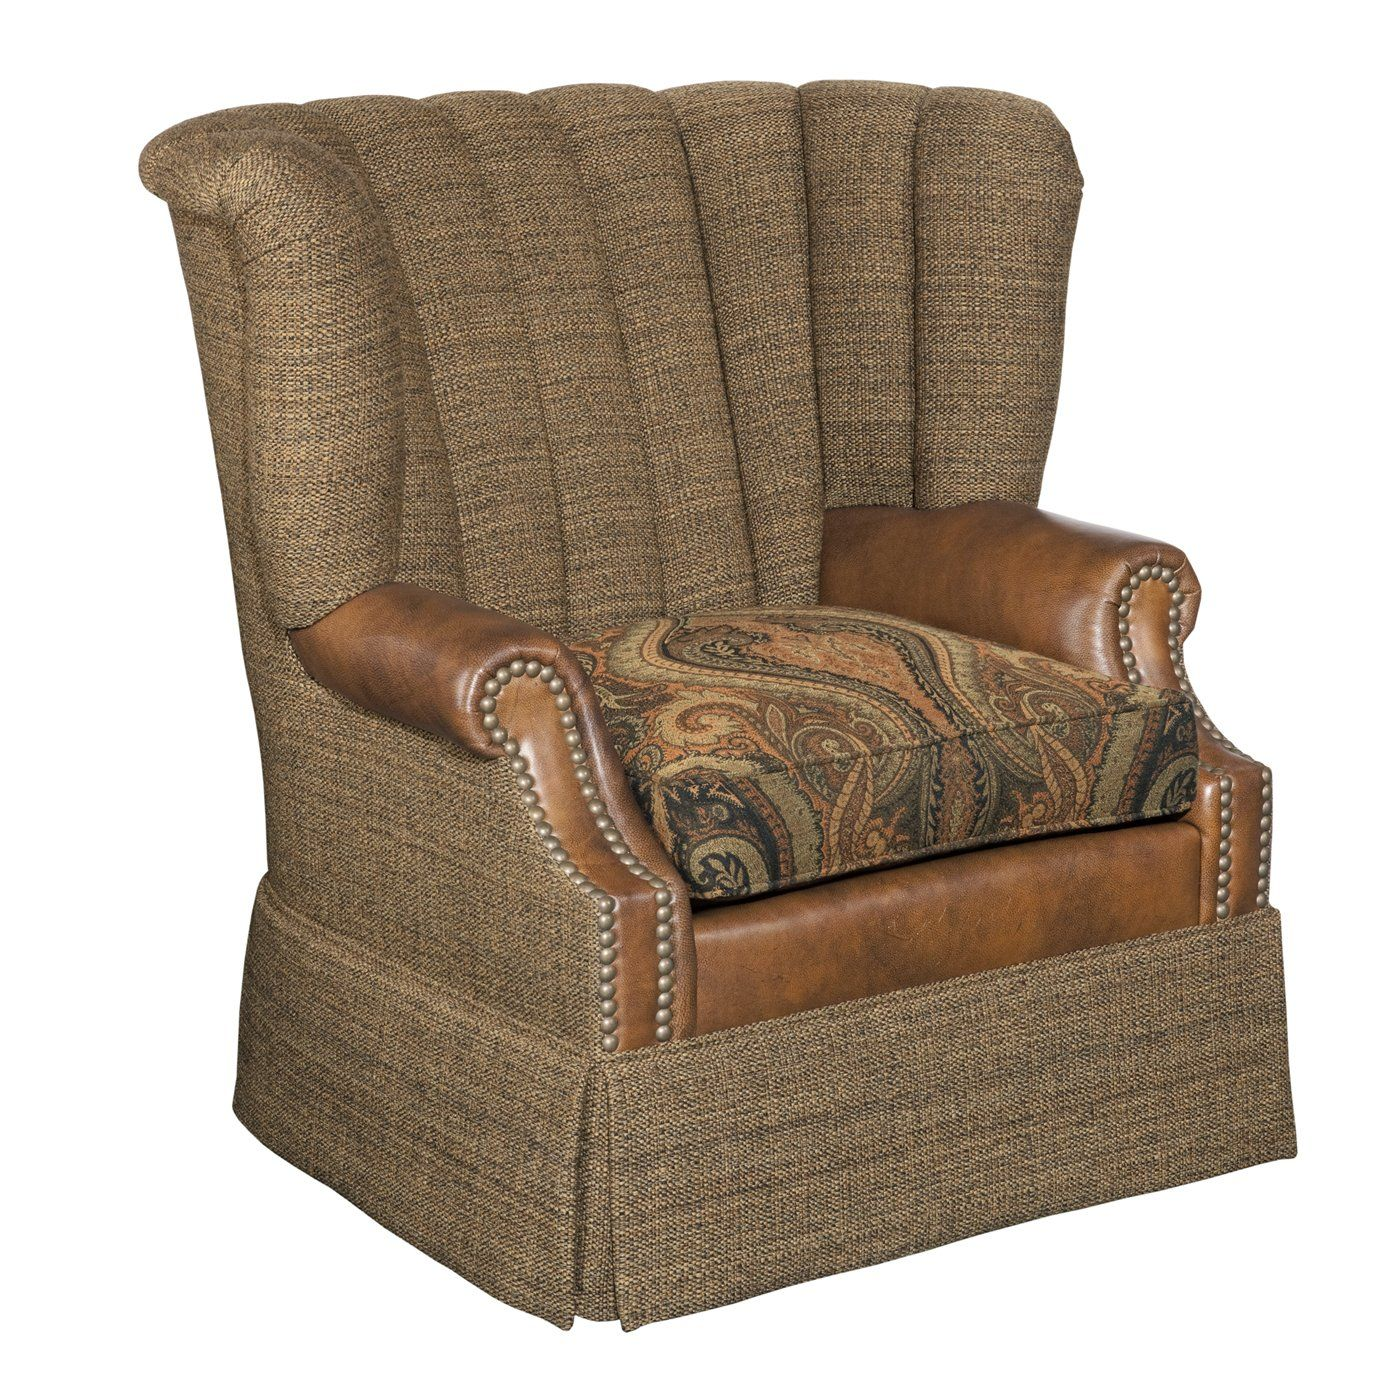 Shadow Mountain SM5251 88 AC Rustic Living Upholstered Swivel